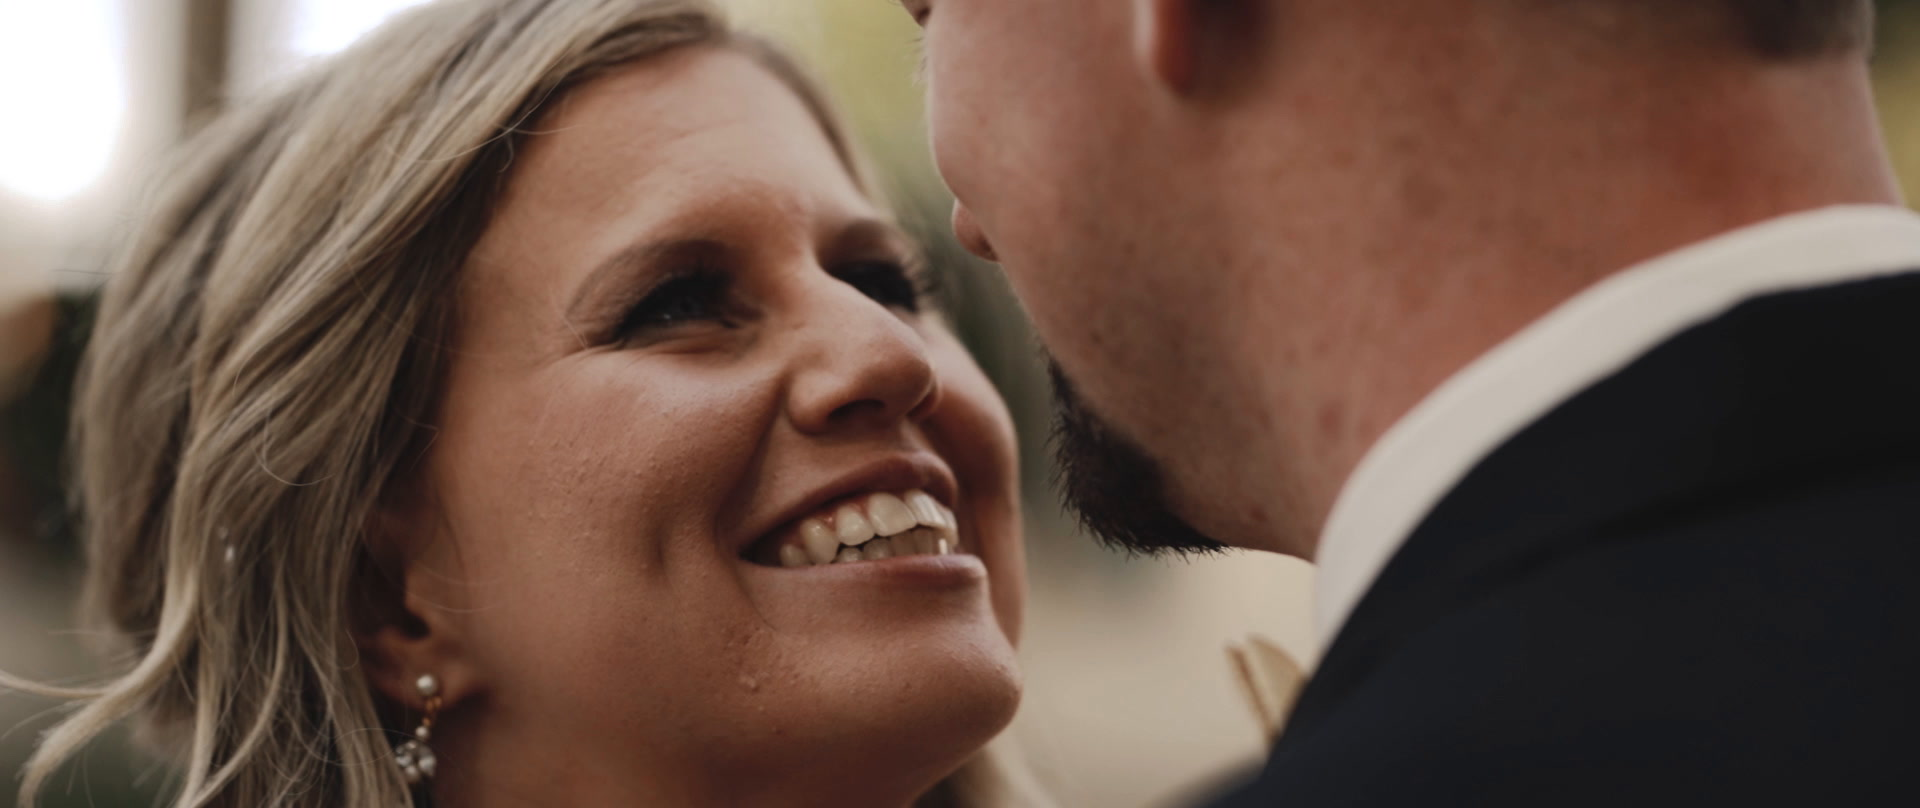 Paige + Brendon | Cincinnati, Ohio | The Transept